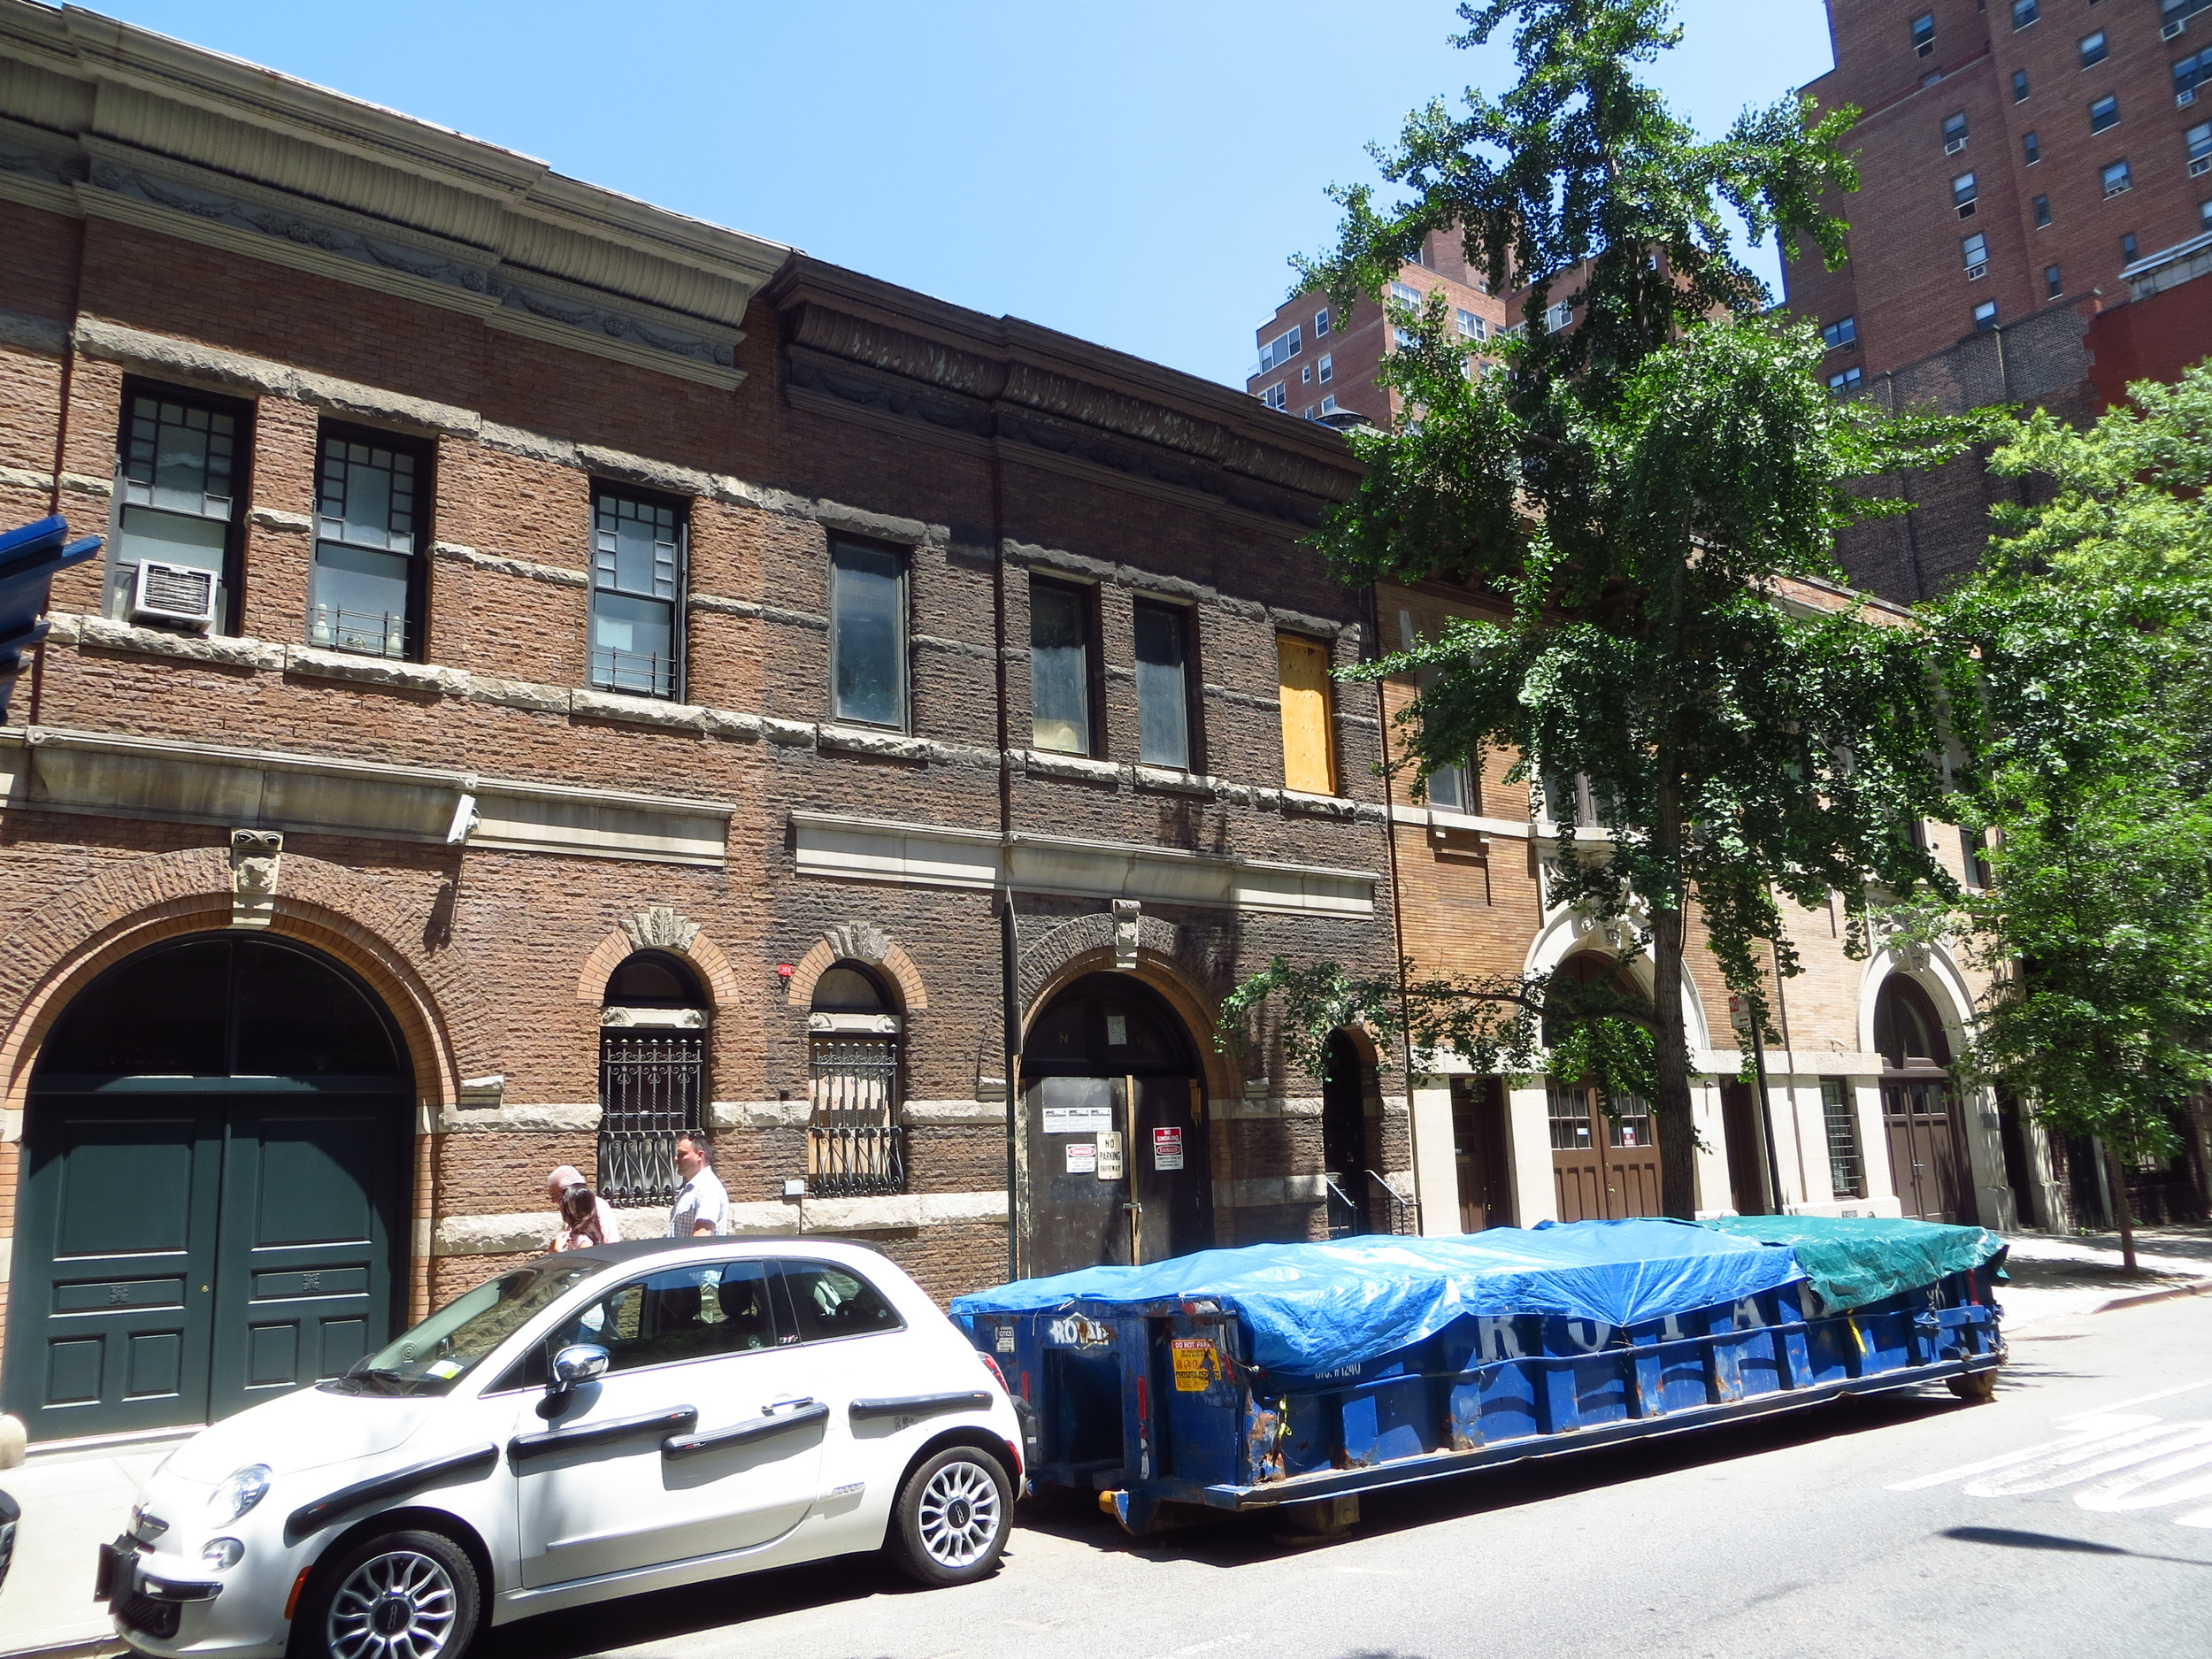 Old carriage houses